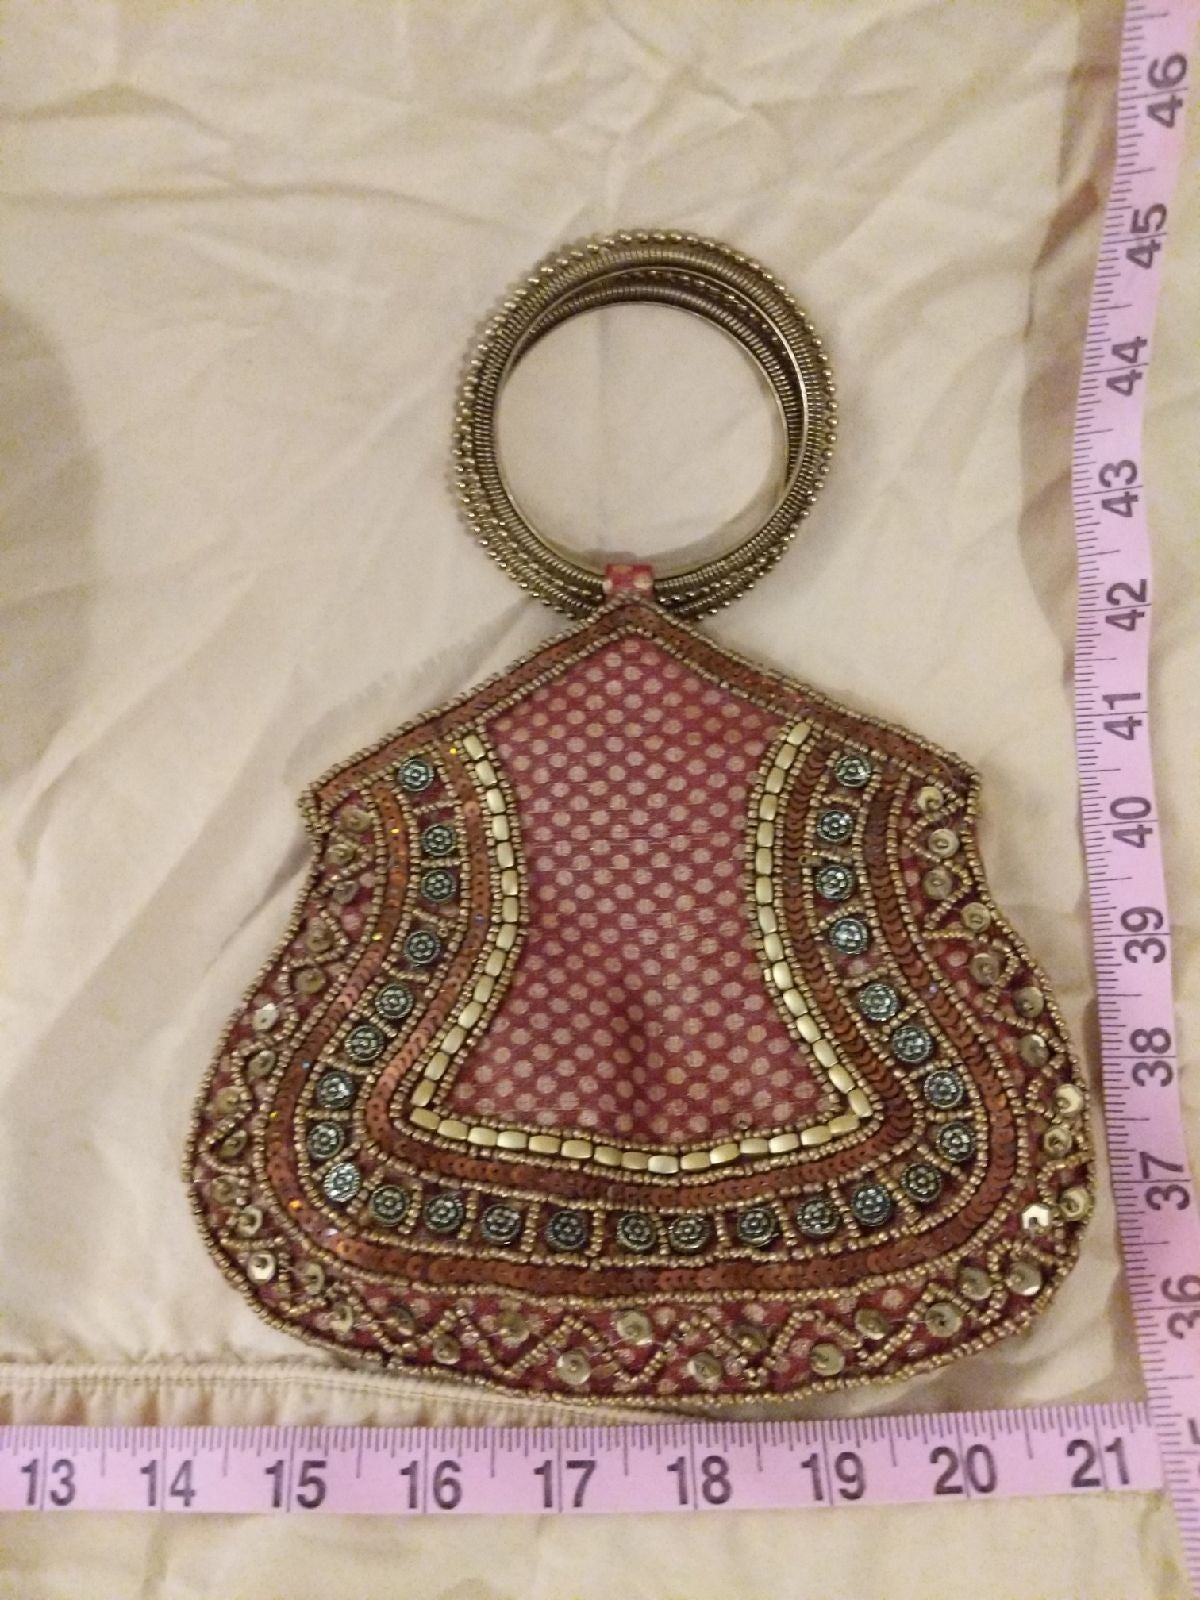 Beautiful made in India small purse/bag.